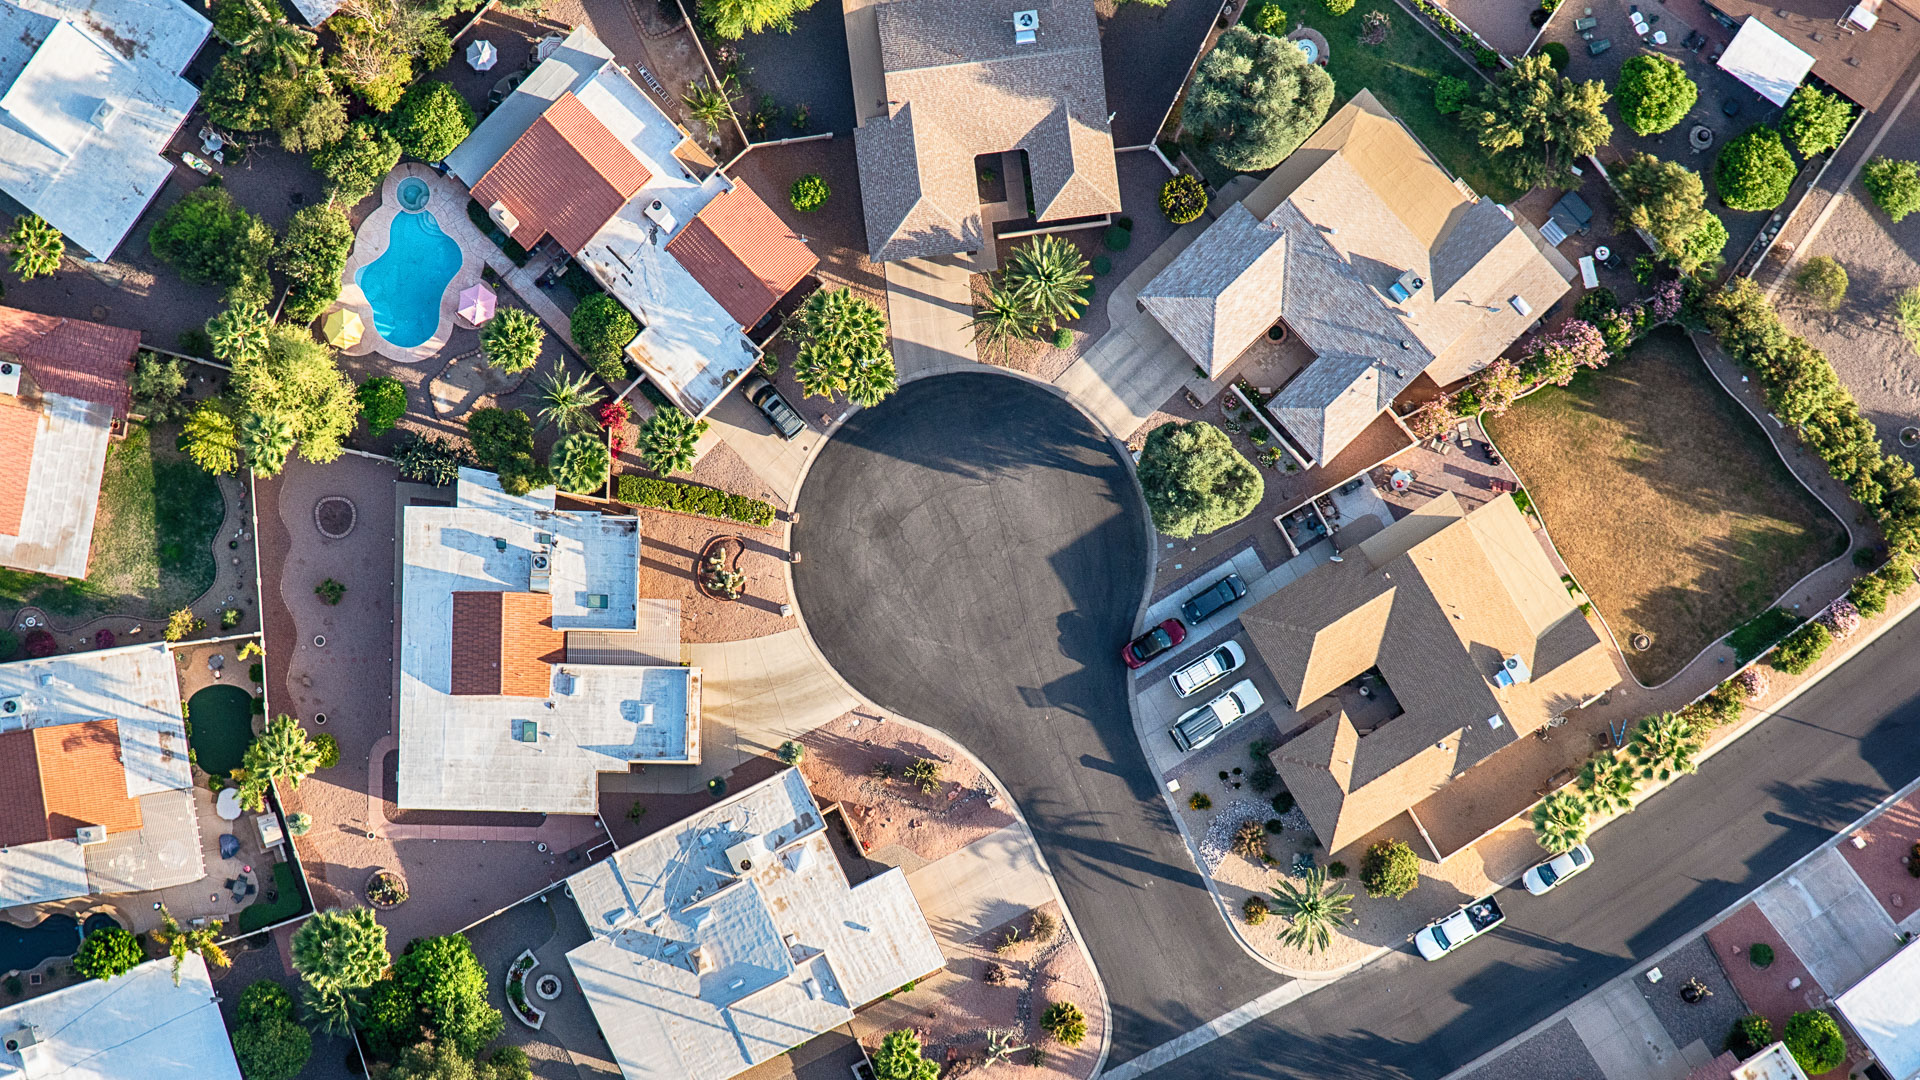 25 Worst Things About Homeowners Associations